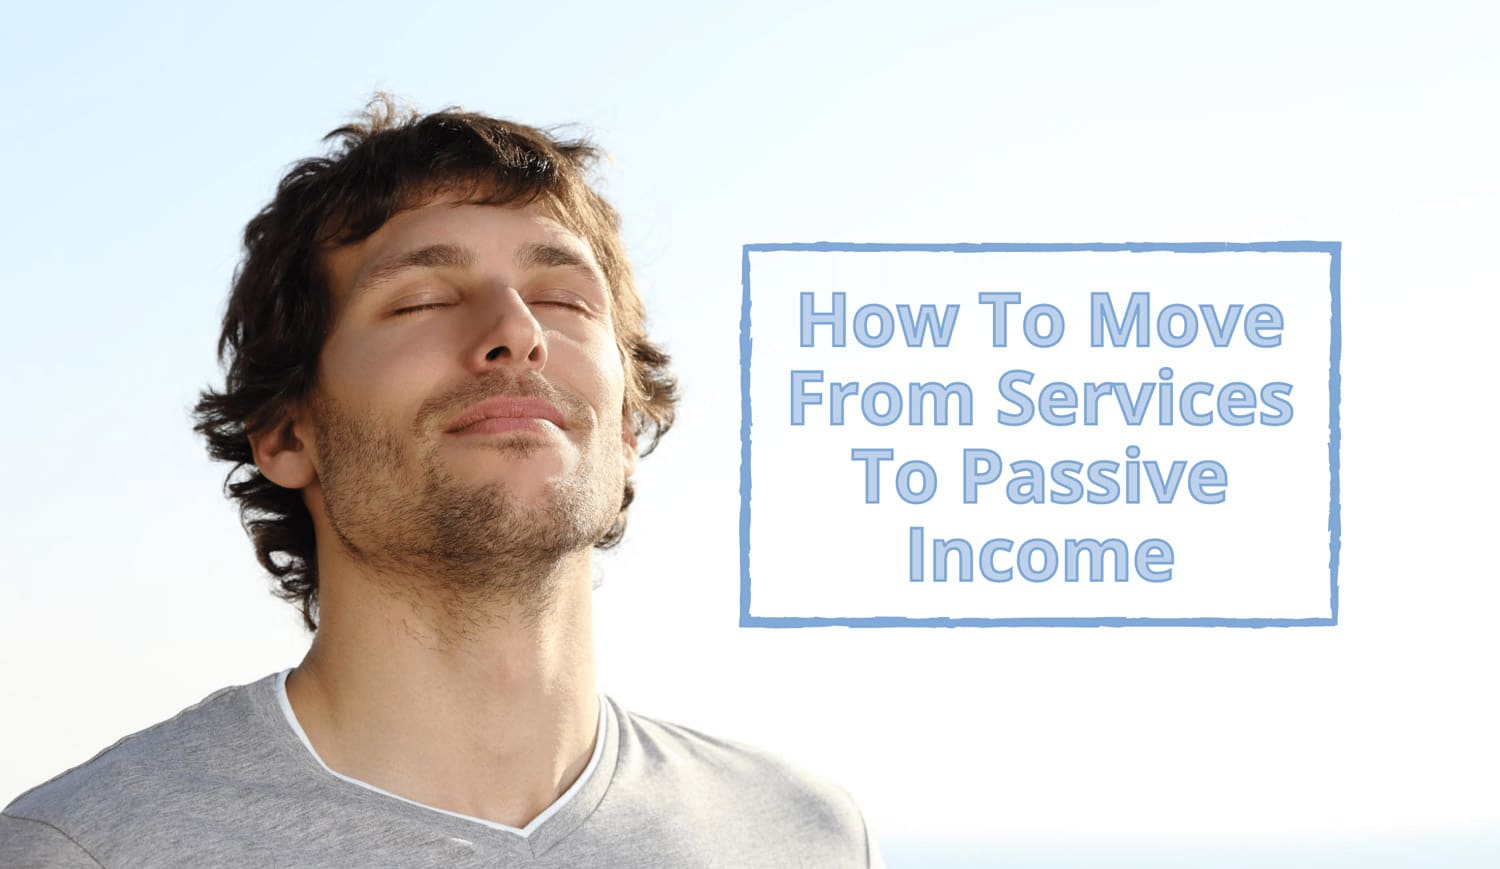 How To Move From Services To Passive Income